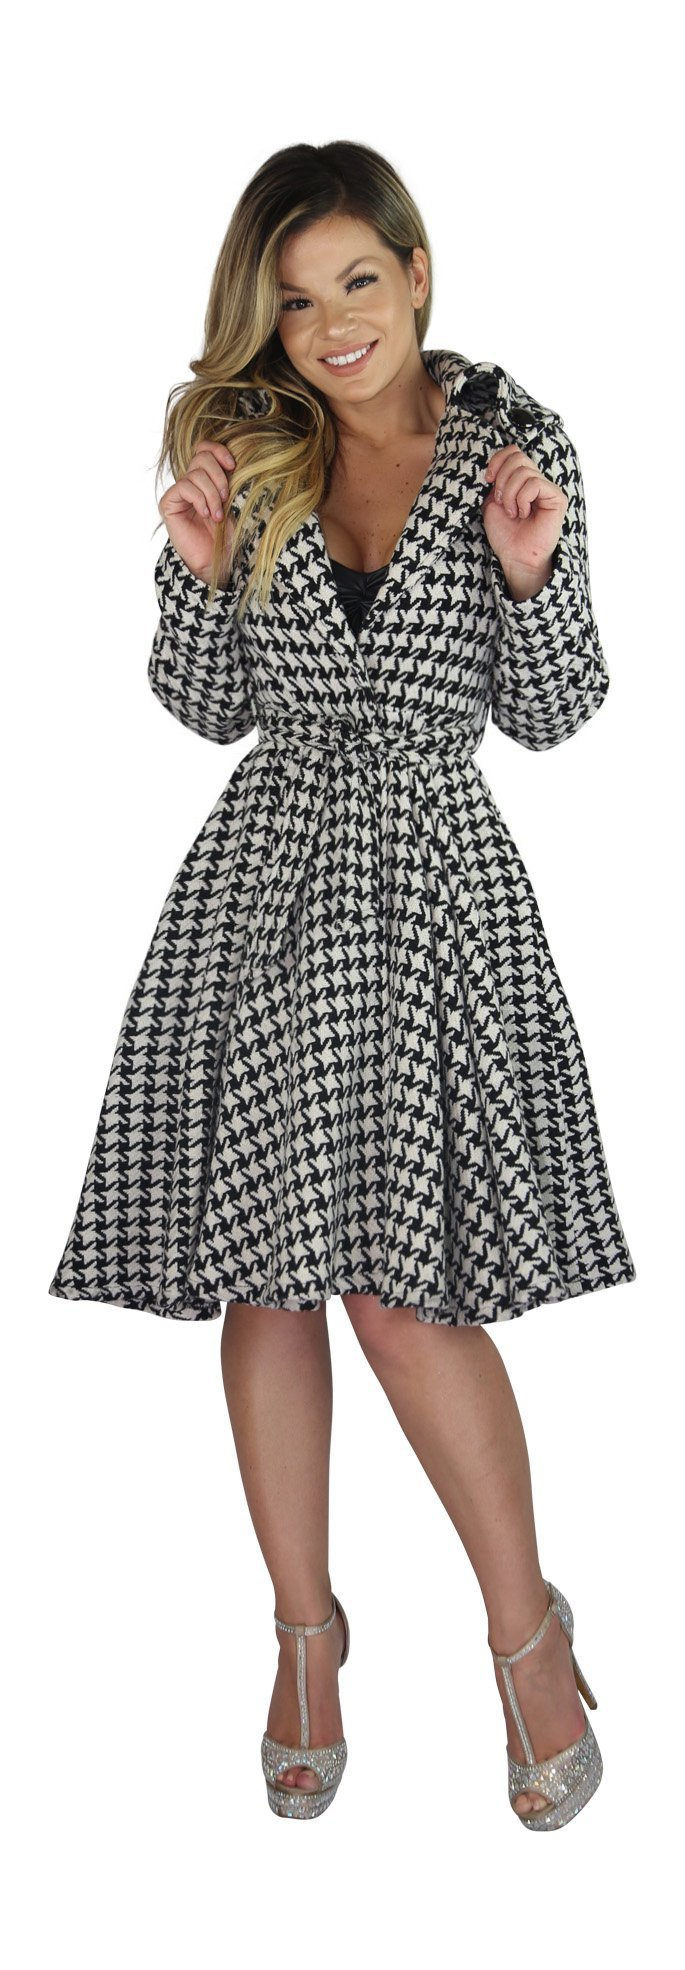 AB Butter Women's Hourglass Shape Classic Double Breasted Coat Peacoat Jacket Trendy Winter Fashion - Houndstooth